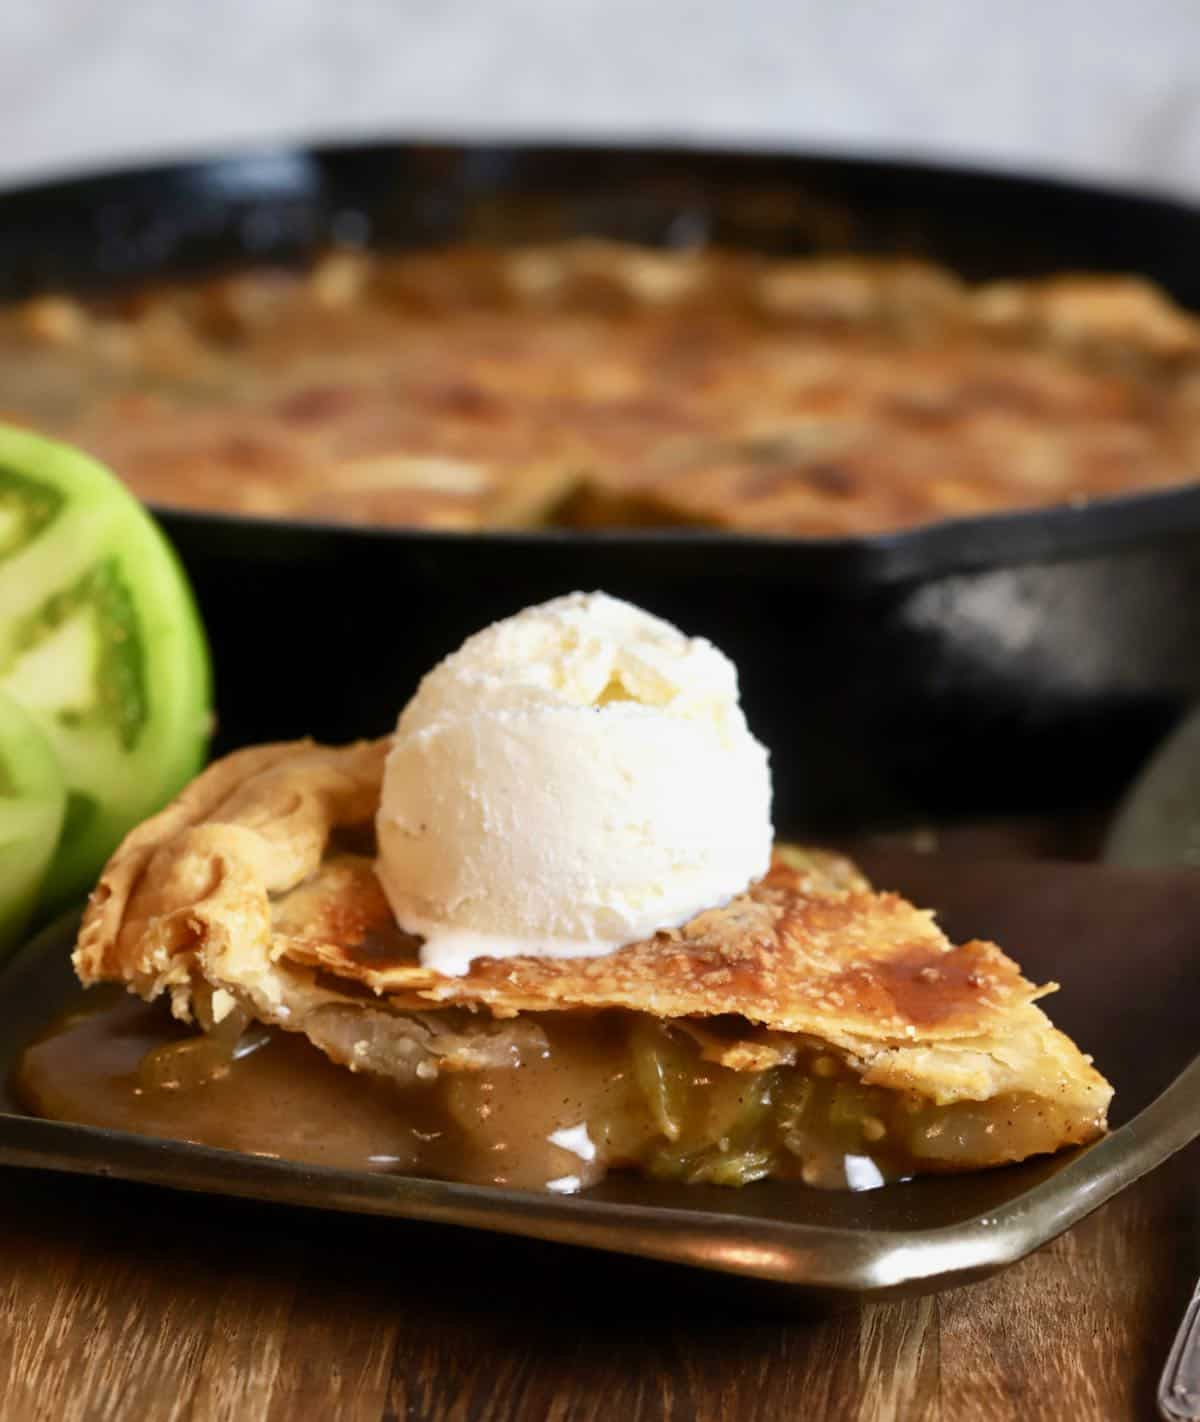 A slice of green tomato pie topped with a. scoop of ice cream